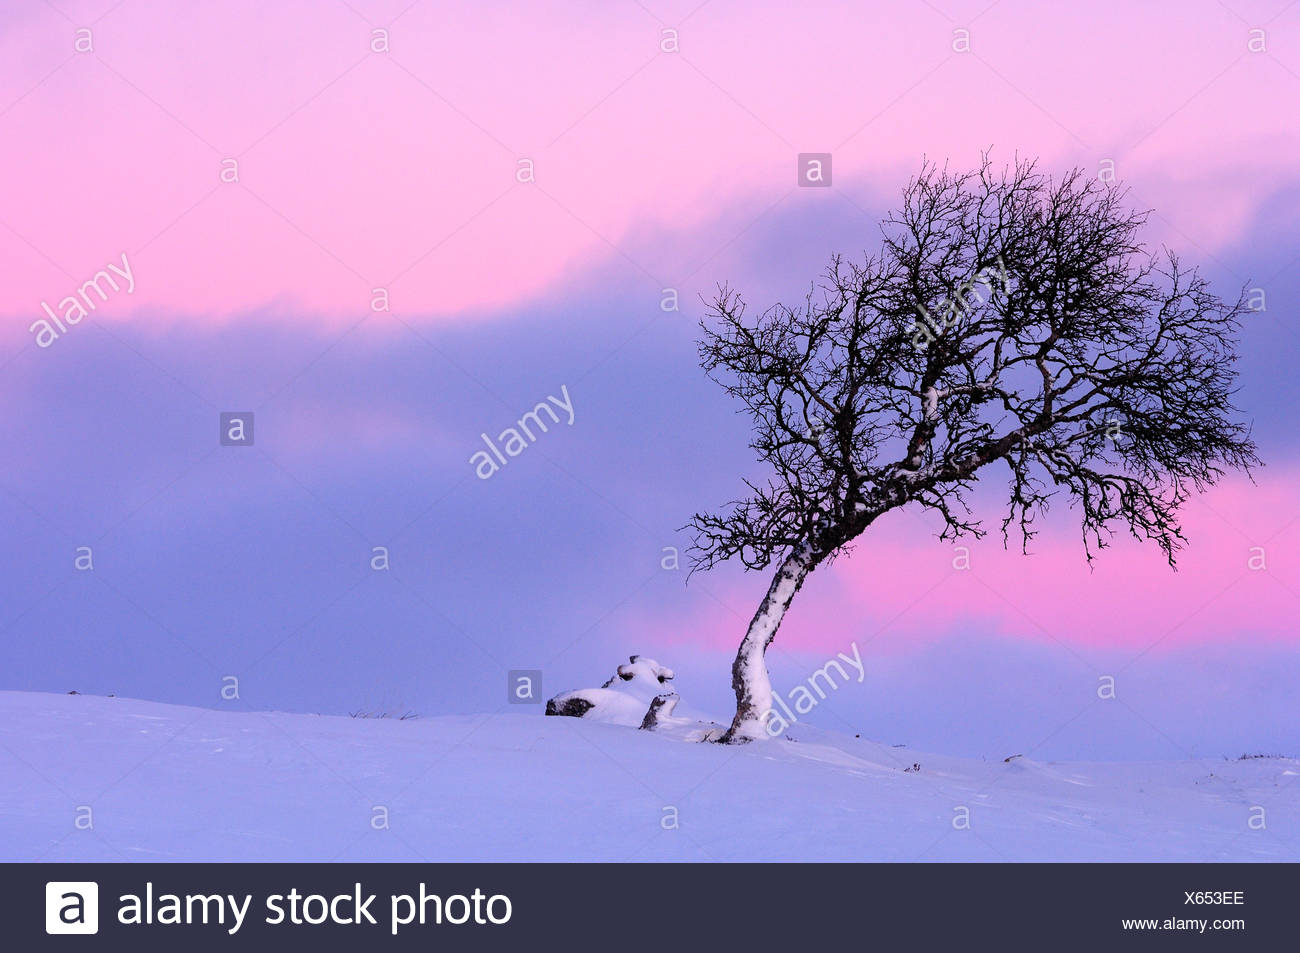 Scandinavia, Sweden, Dalarna, View of birch tree on winter landscape - Stock Image